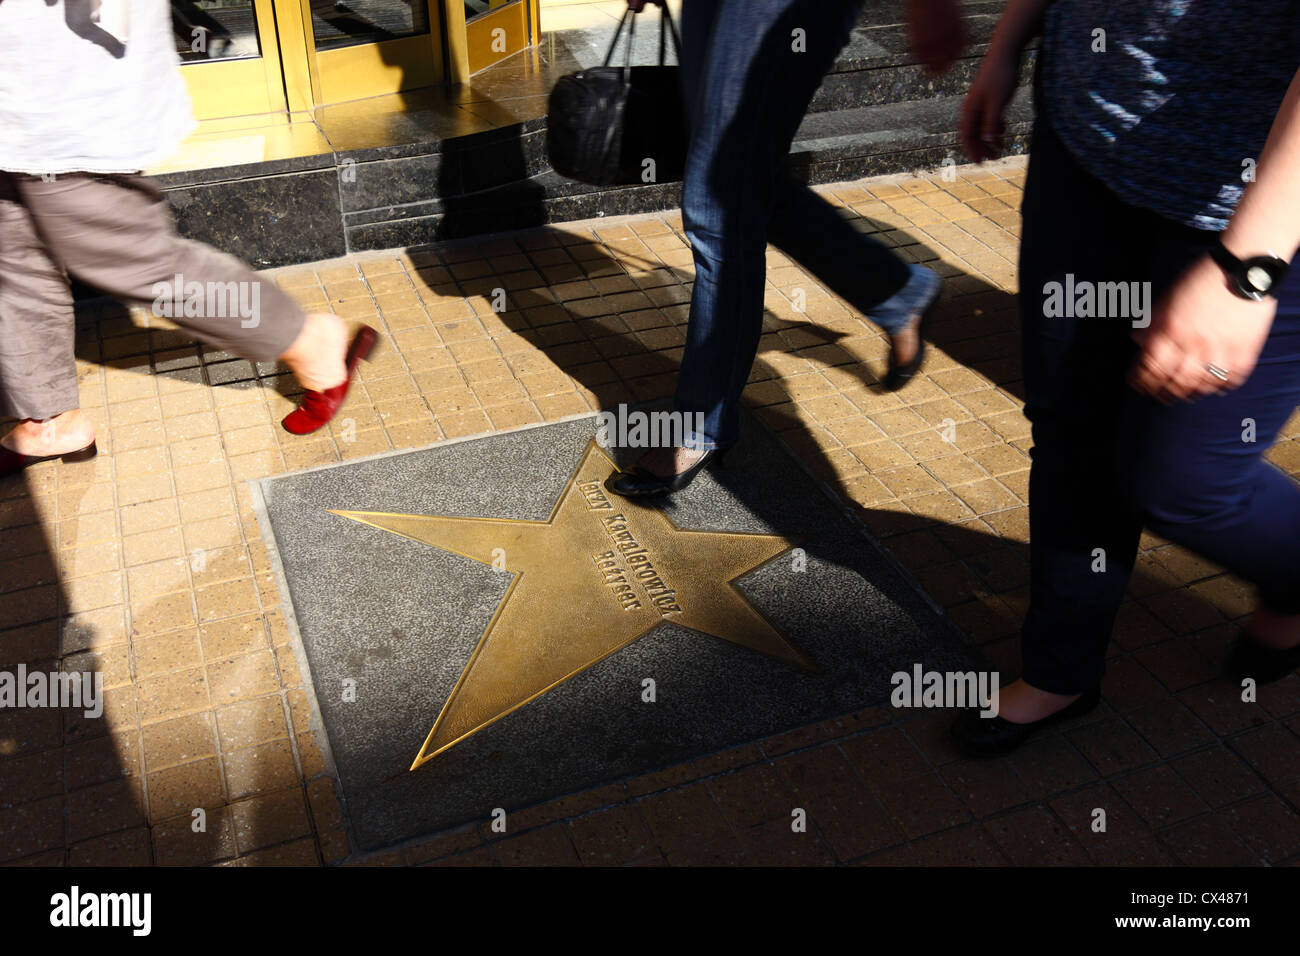 Women walking by Jerzy Kawalerowicz star in Lodz walk of fame at Piotrkowska street, Poland - Stock Image